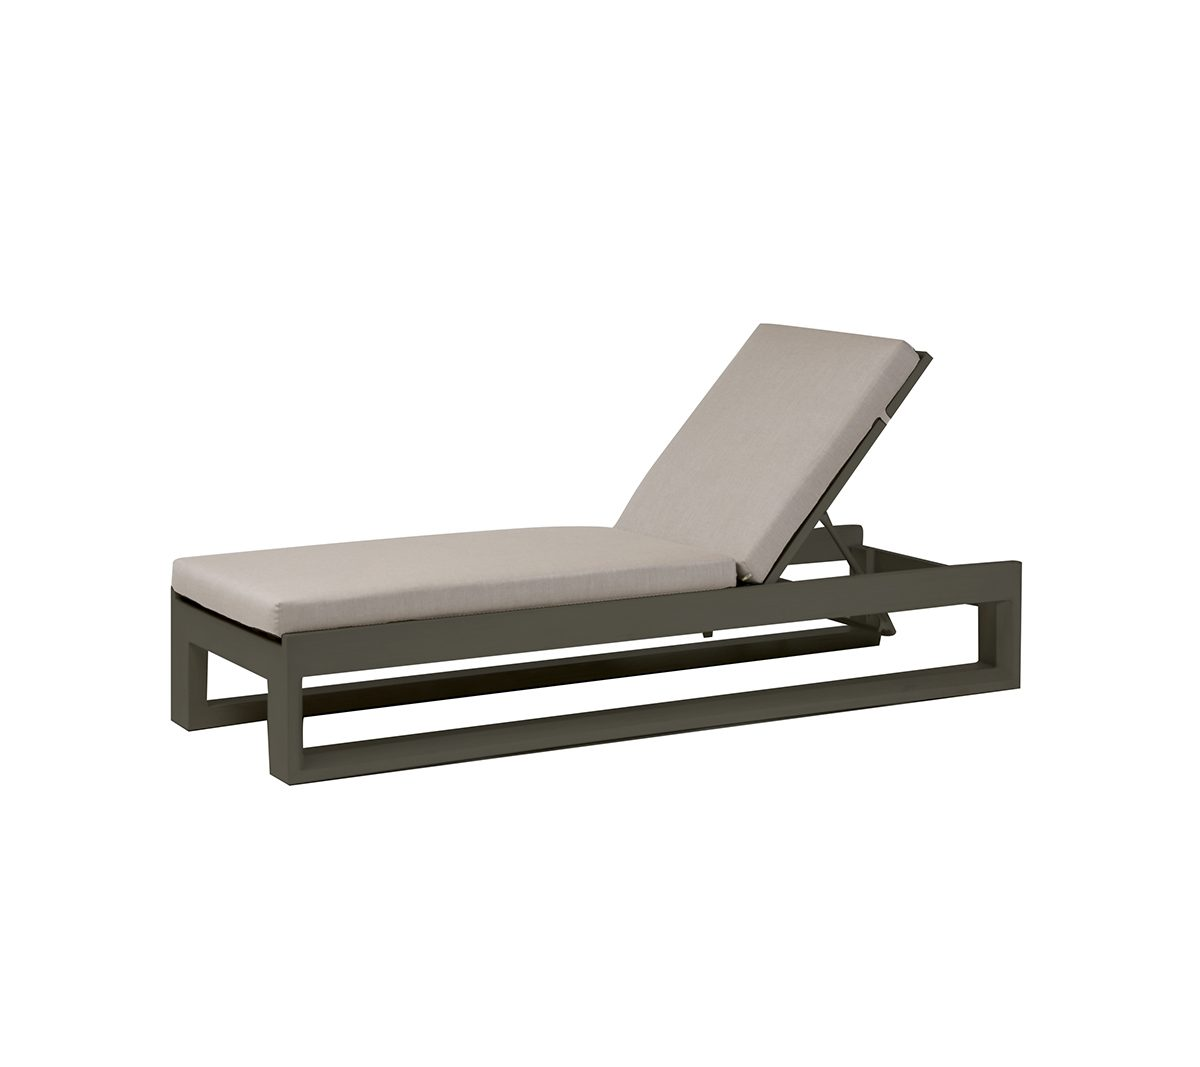 Metal frame Element 5.0 lounger with light grey cushion